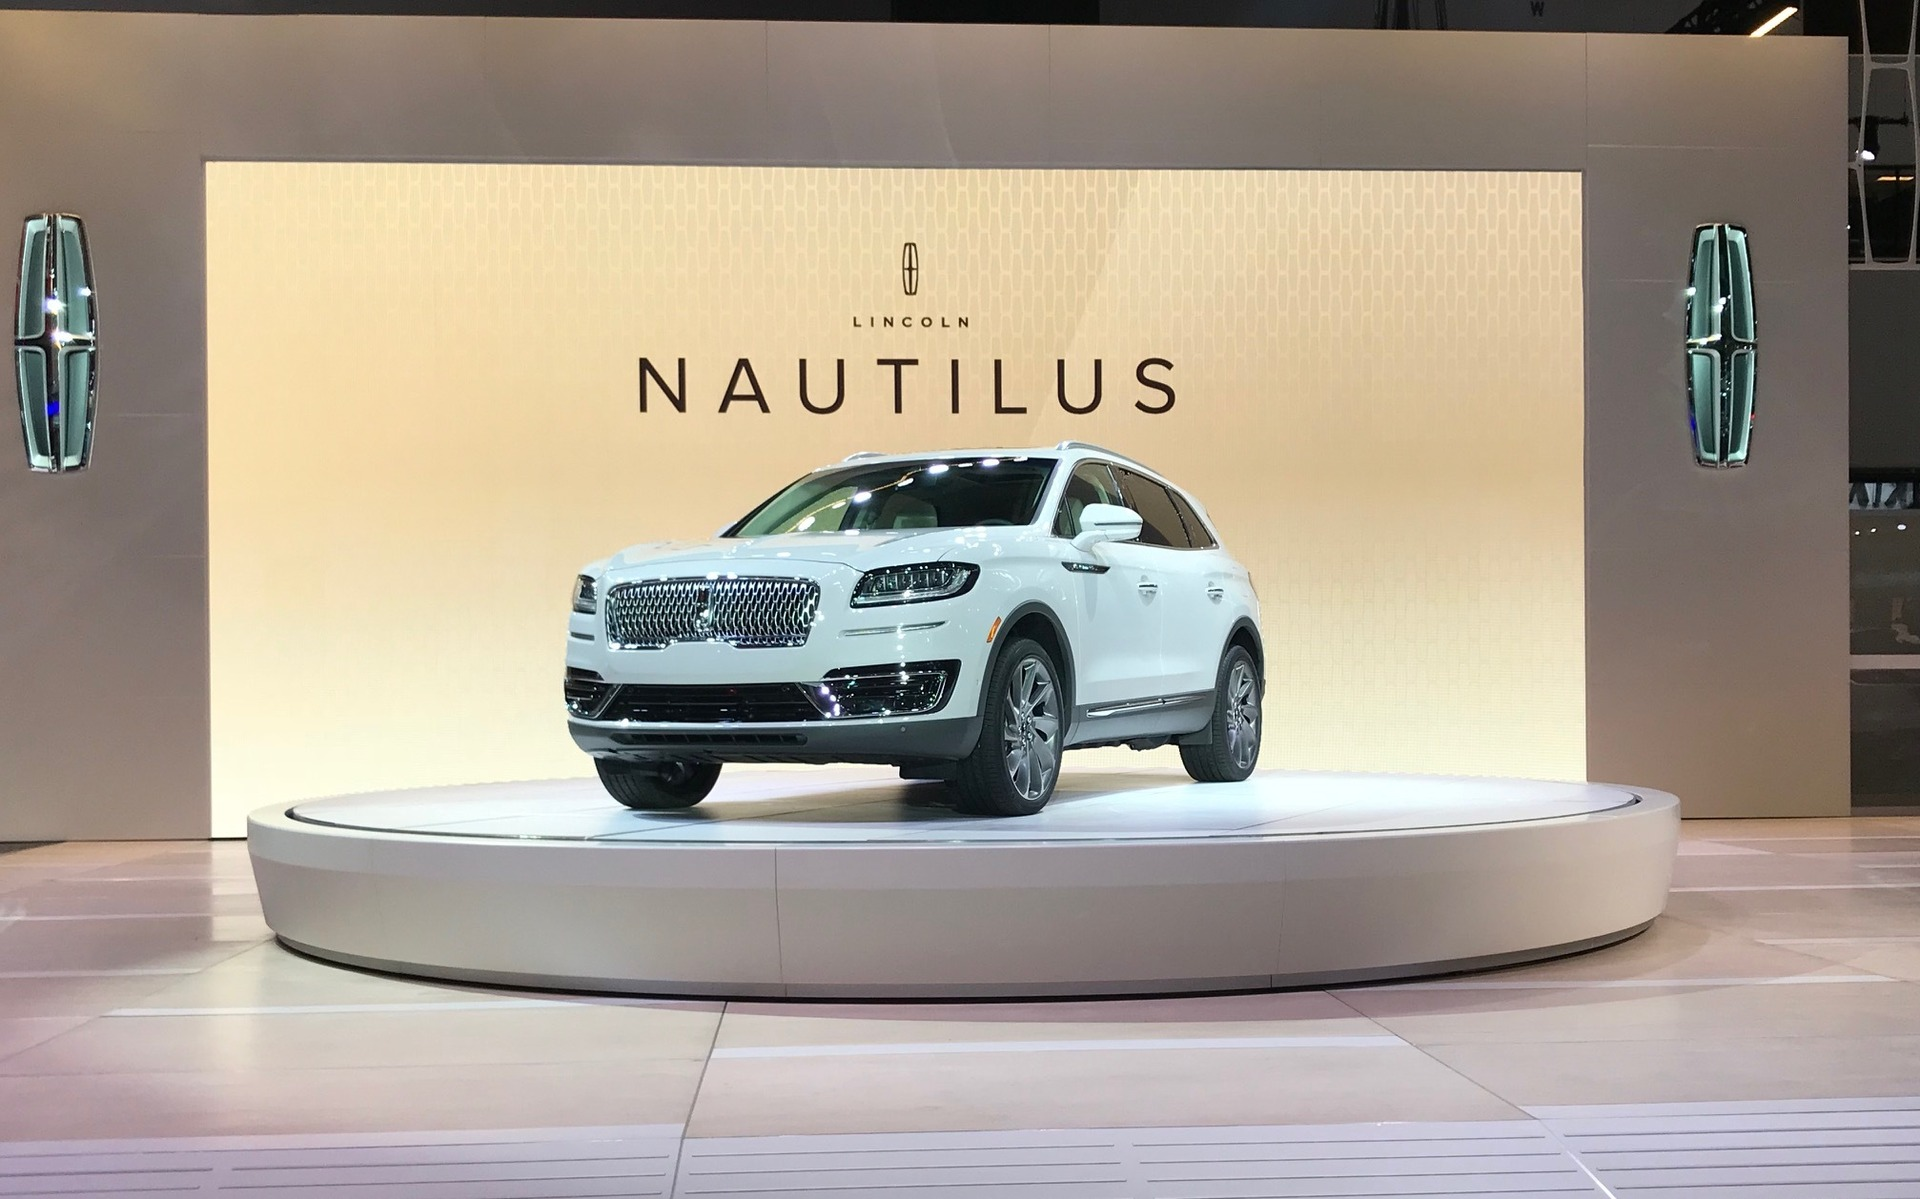 2019 Lincoln Nautilus Revealed Ahead of Los Angeles Auto Show - 1/23